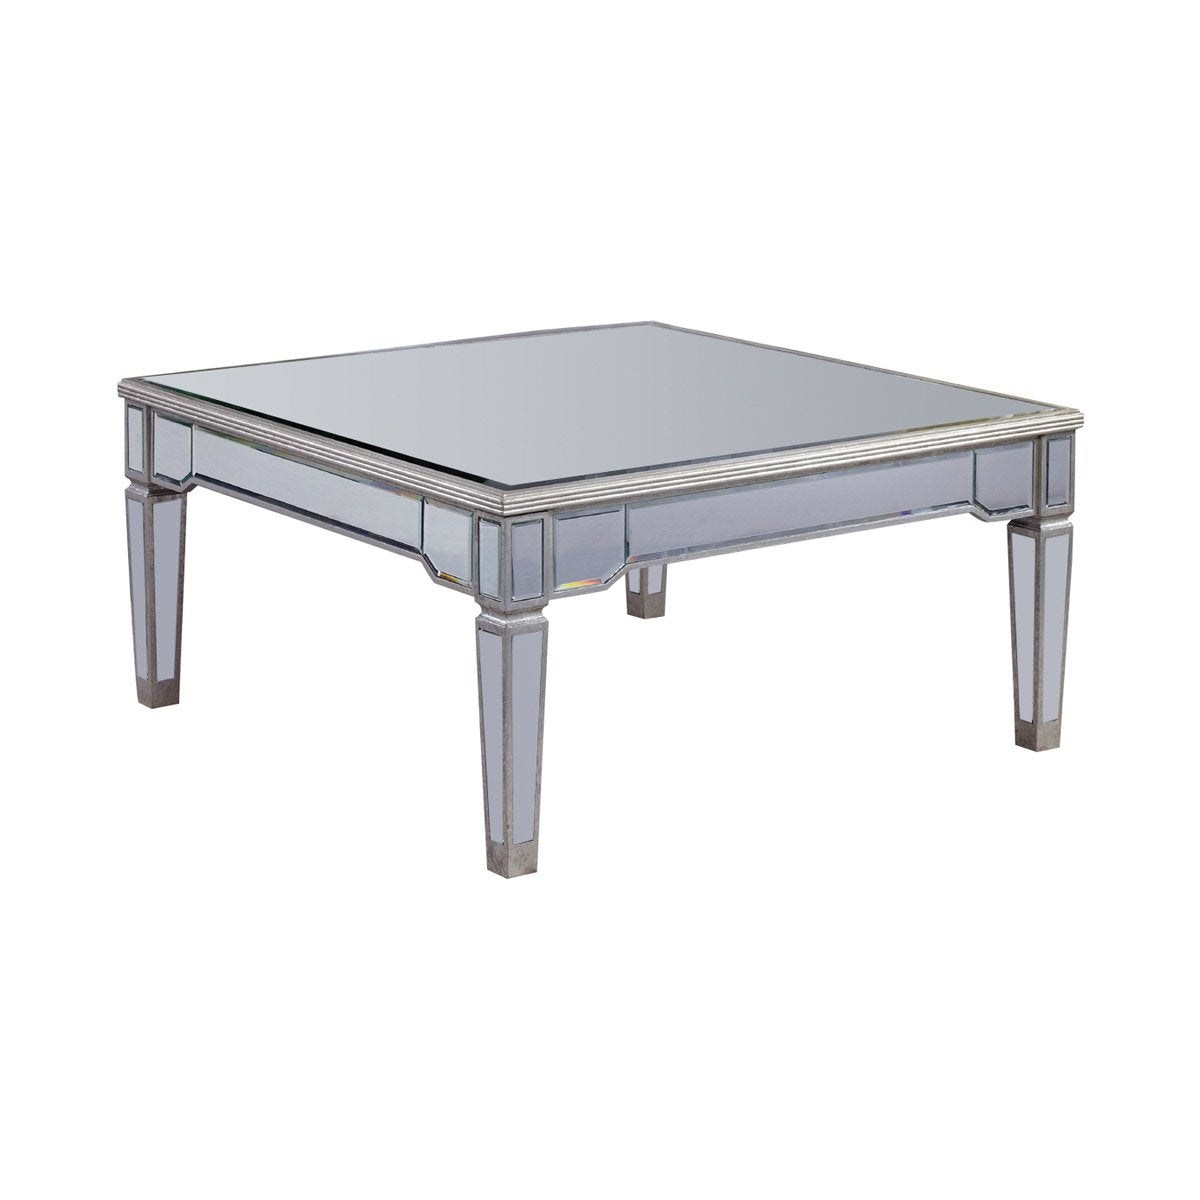 Florentine 38 X 19 Coffee Table - Silver Leaf Finish (Mf1-2002Sc) Coffee Table